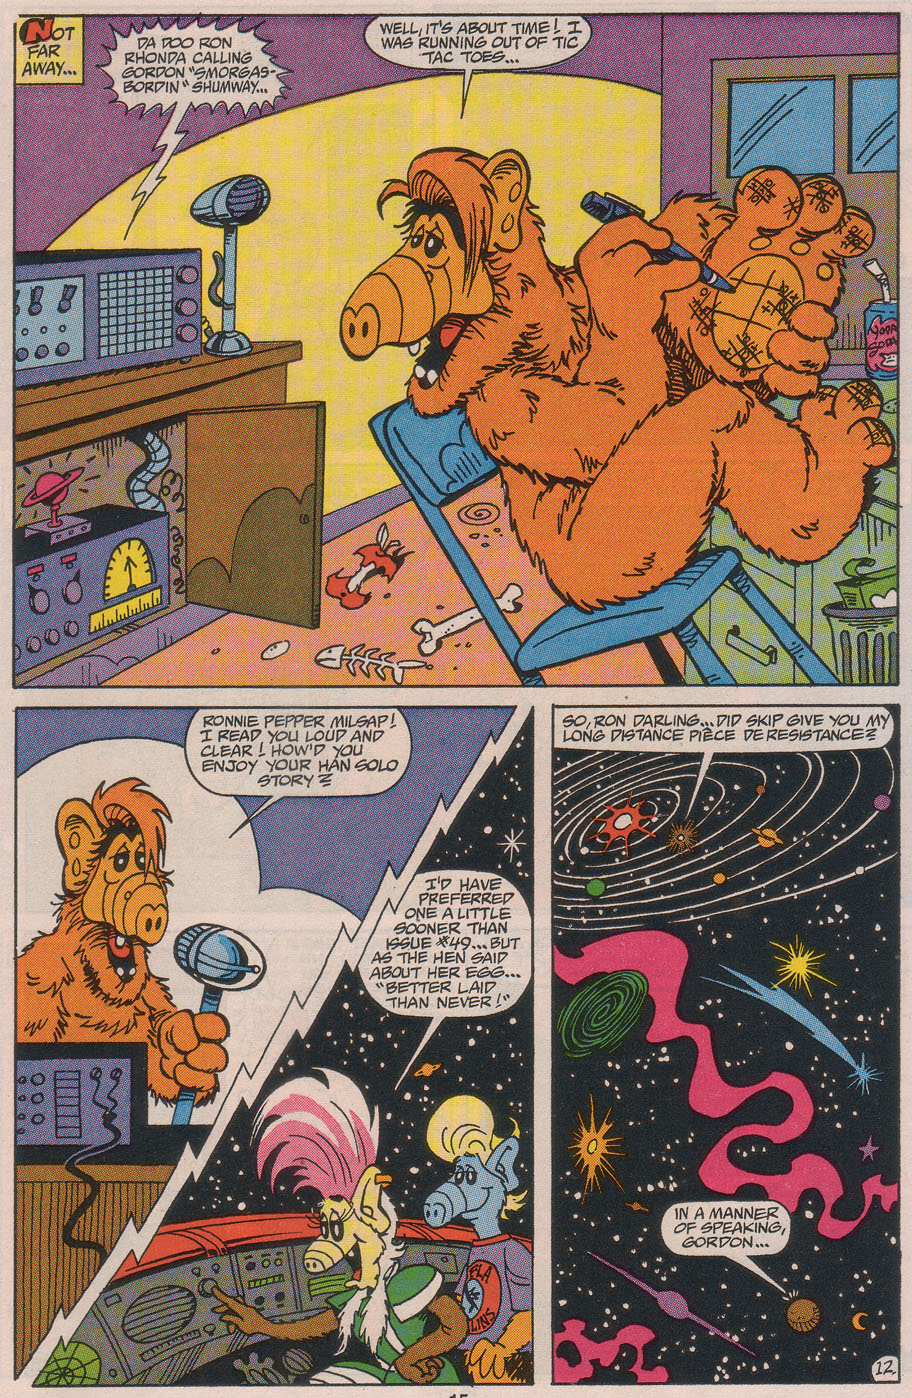 Read online ALF comic -  Issue #49 - 17